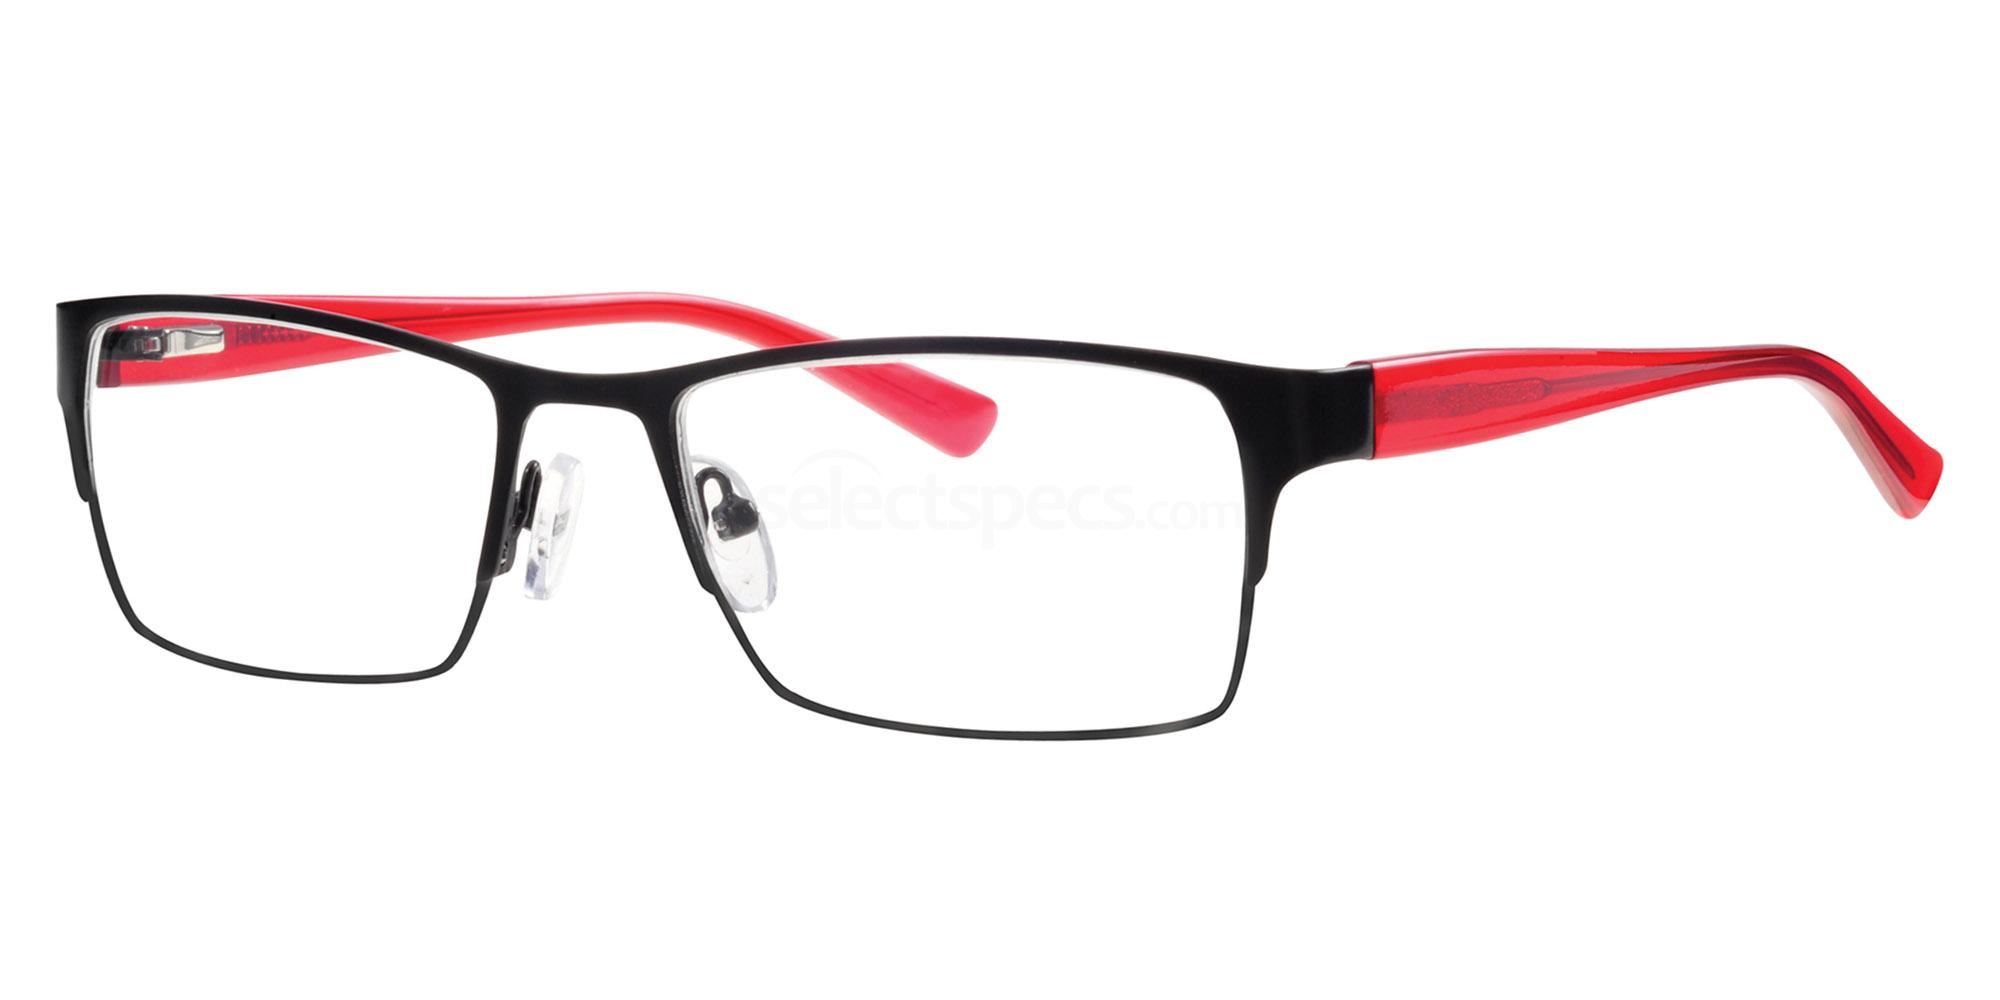 C10 442 Glasses, Visage Elite